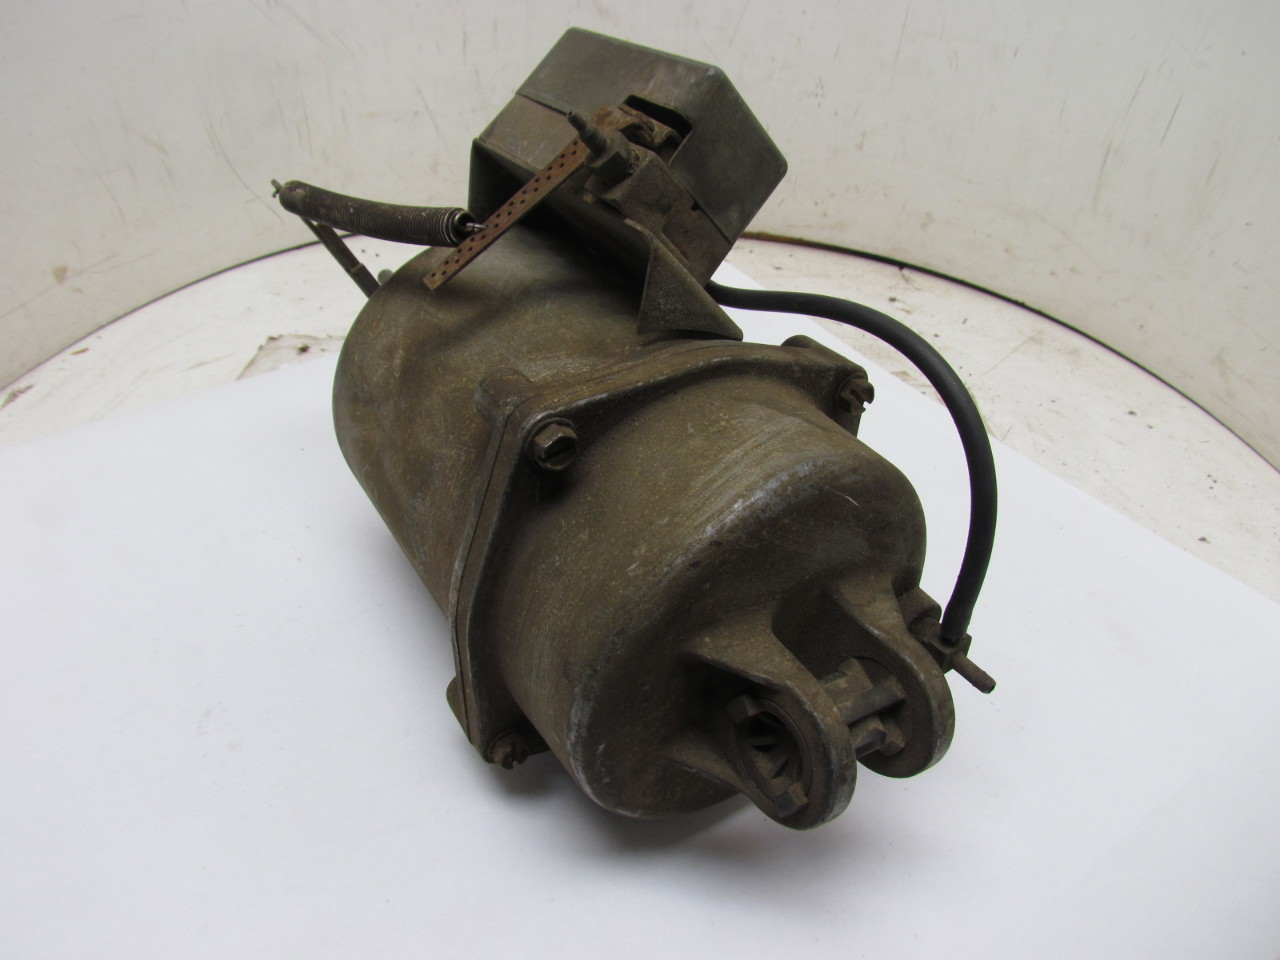 #5A4F3C Johnson Controls D 3153 4 Pneumatic Damper Actuator 8 13  Brand New 4841 Johnson Controls Damper Actuator images with 1280x960 px on helpvideos.info - Air Conditioners, Air Coolers and more